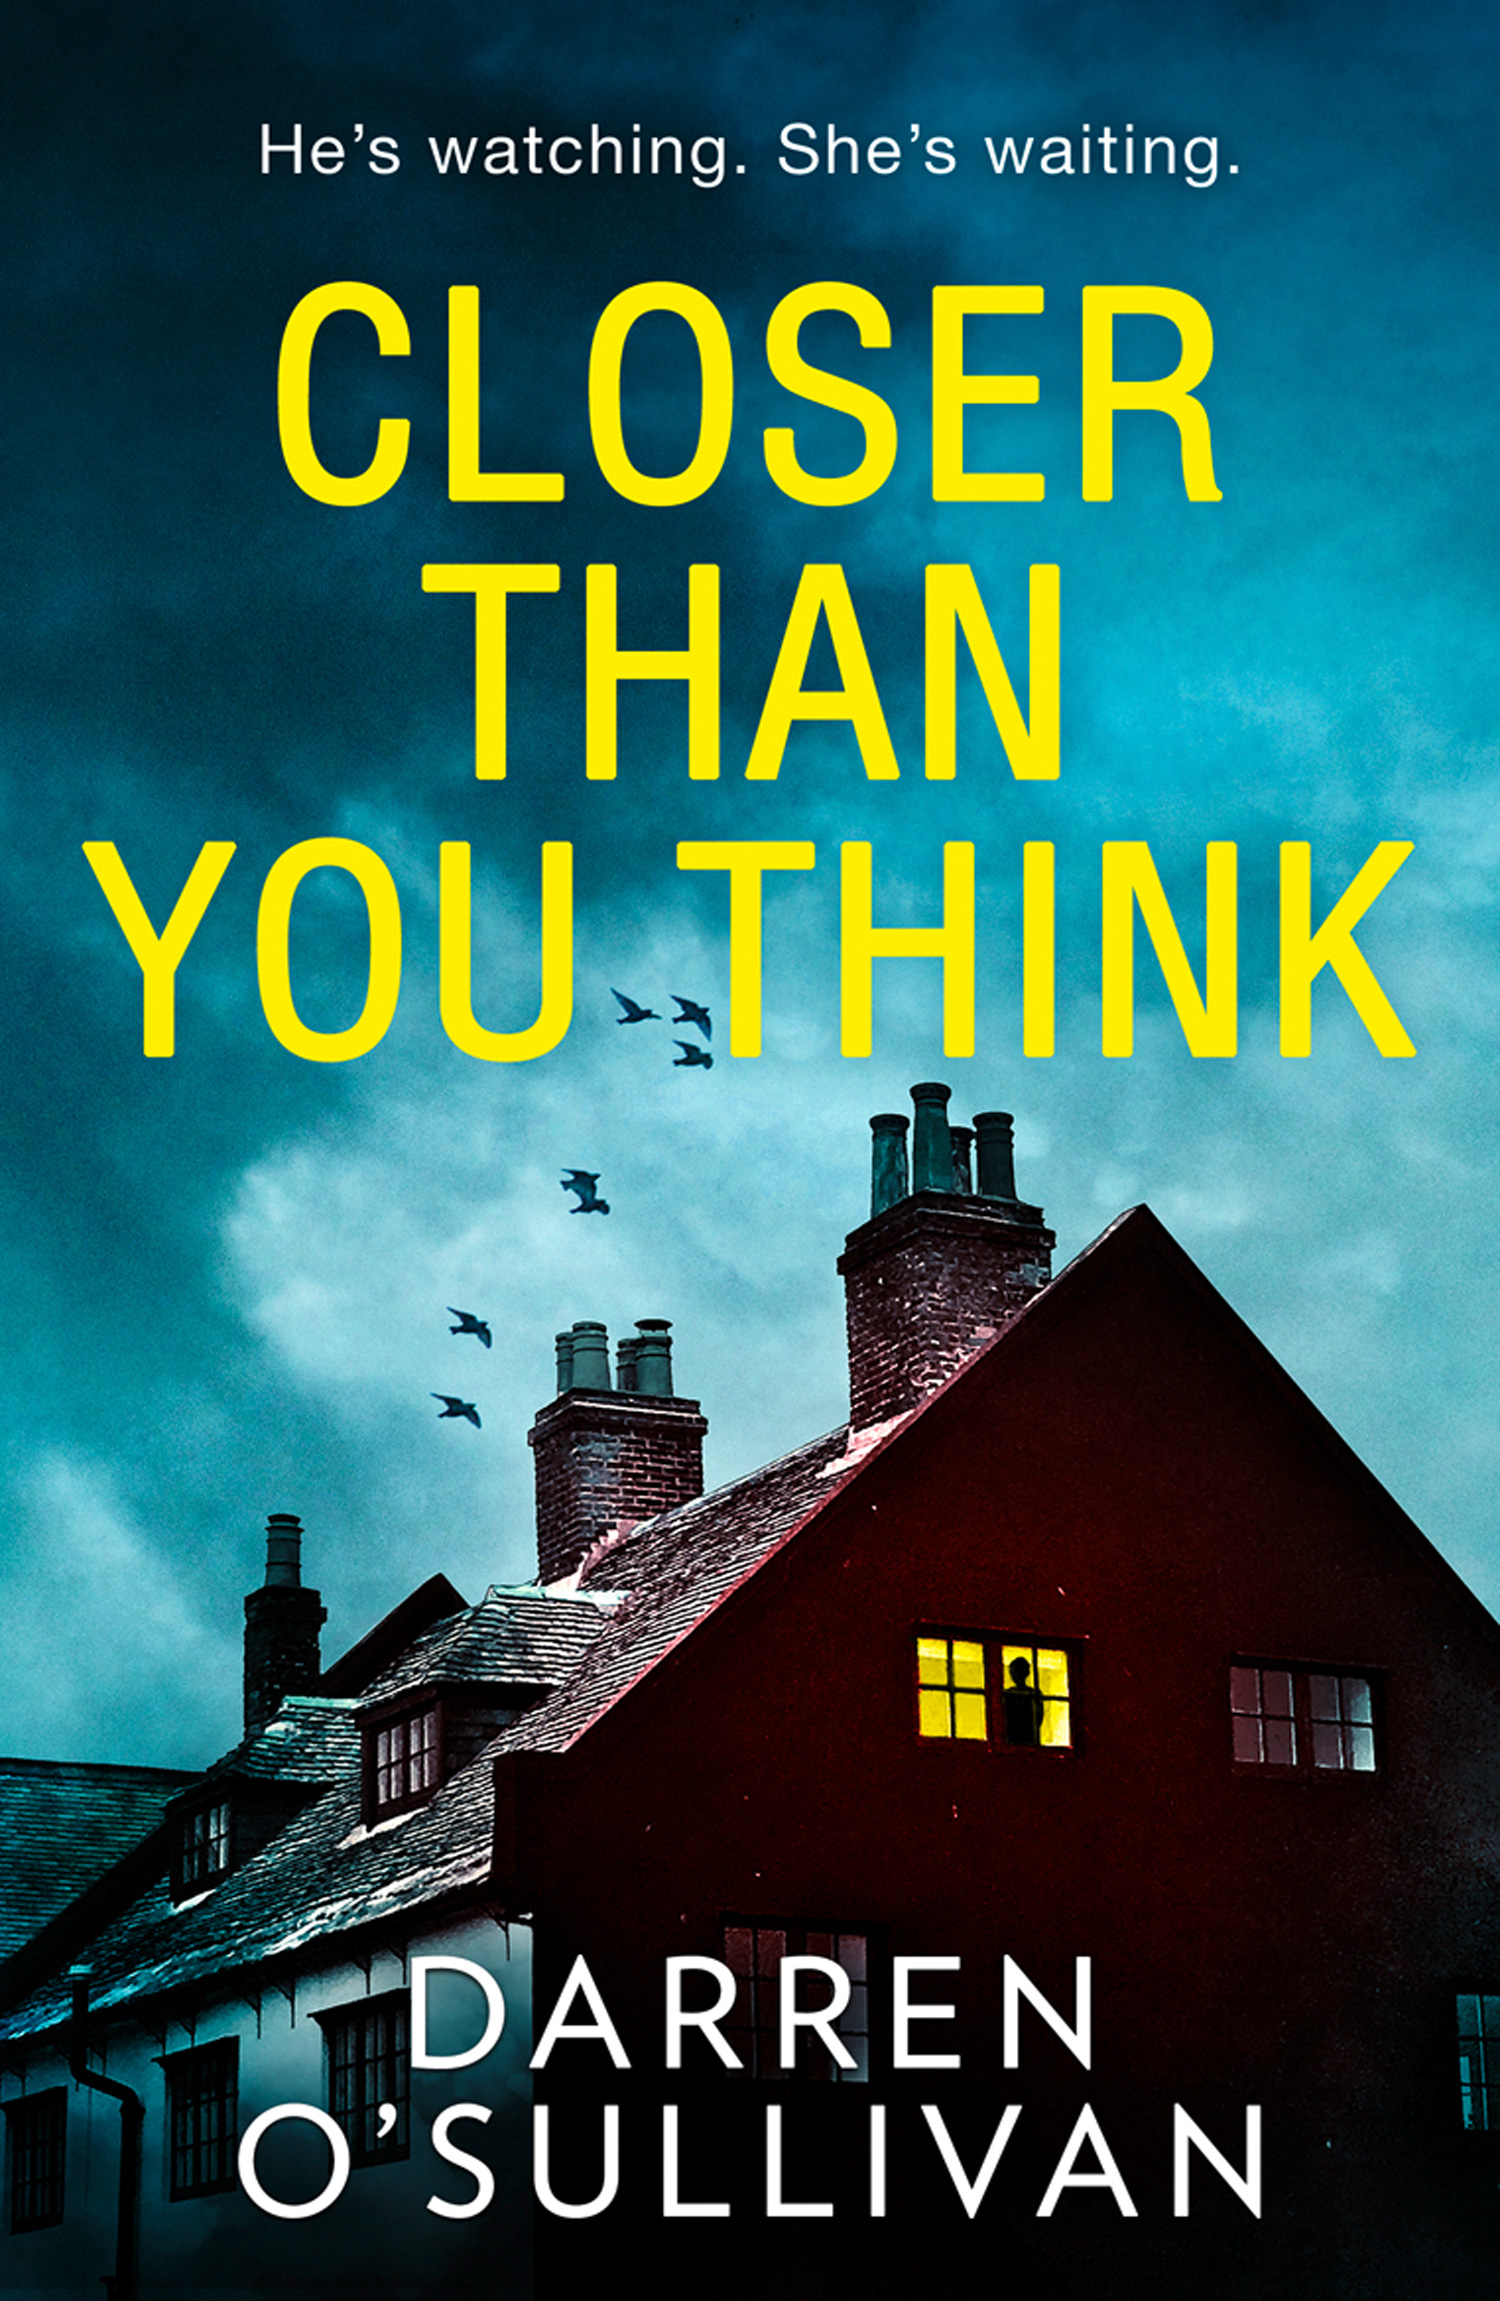 Darren O'Sullivan Closer Than You Think darren bresale the poetry of darren bresale